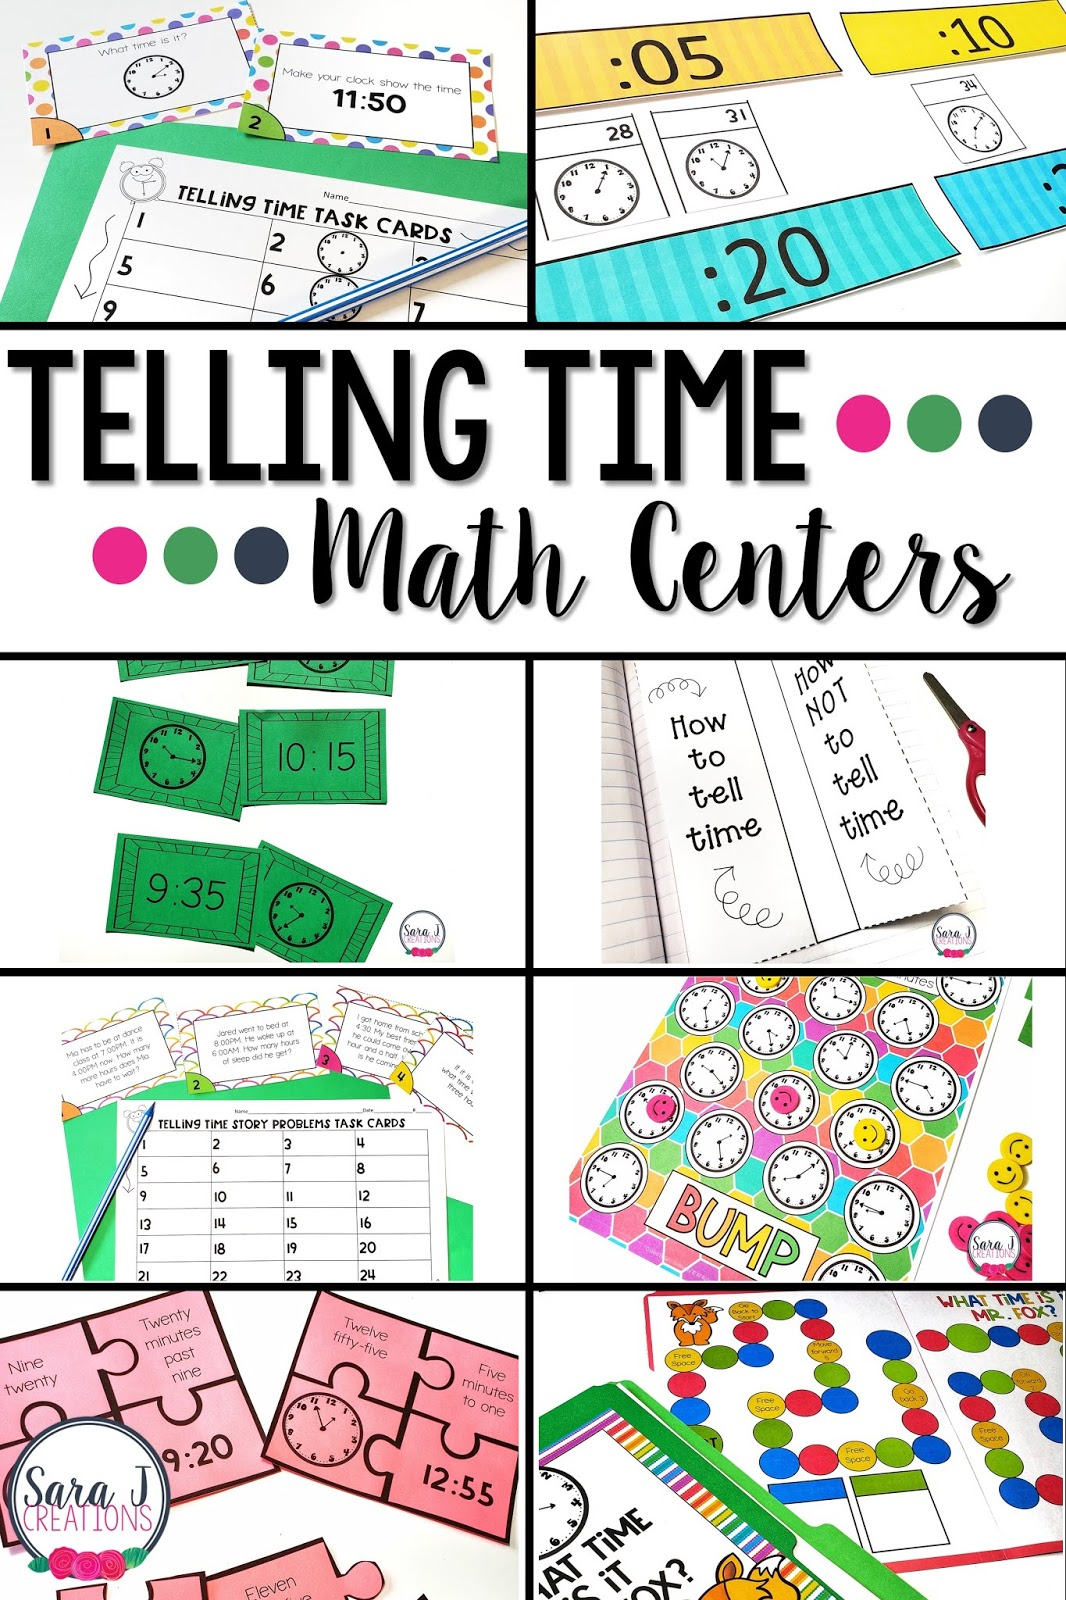 Make teaching telling time more fun and hands-on with these telling time math centers. Eight ready to go centers that have minimal prep, but maximum fun. Students practice reading a clock through games, task cards, puzzles, matching activities, interactive notebooks, and more. These activities are designed for 2nd grade, but could be adapted for first grade or even 3rd grade.